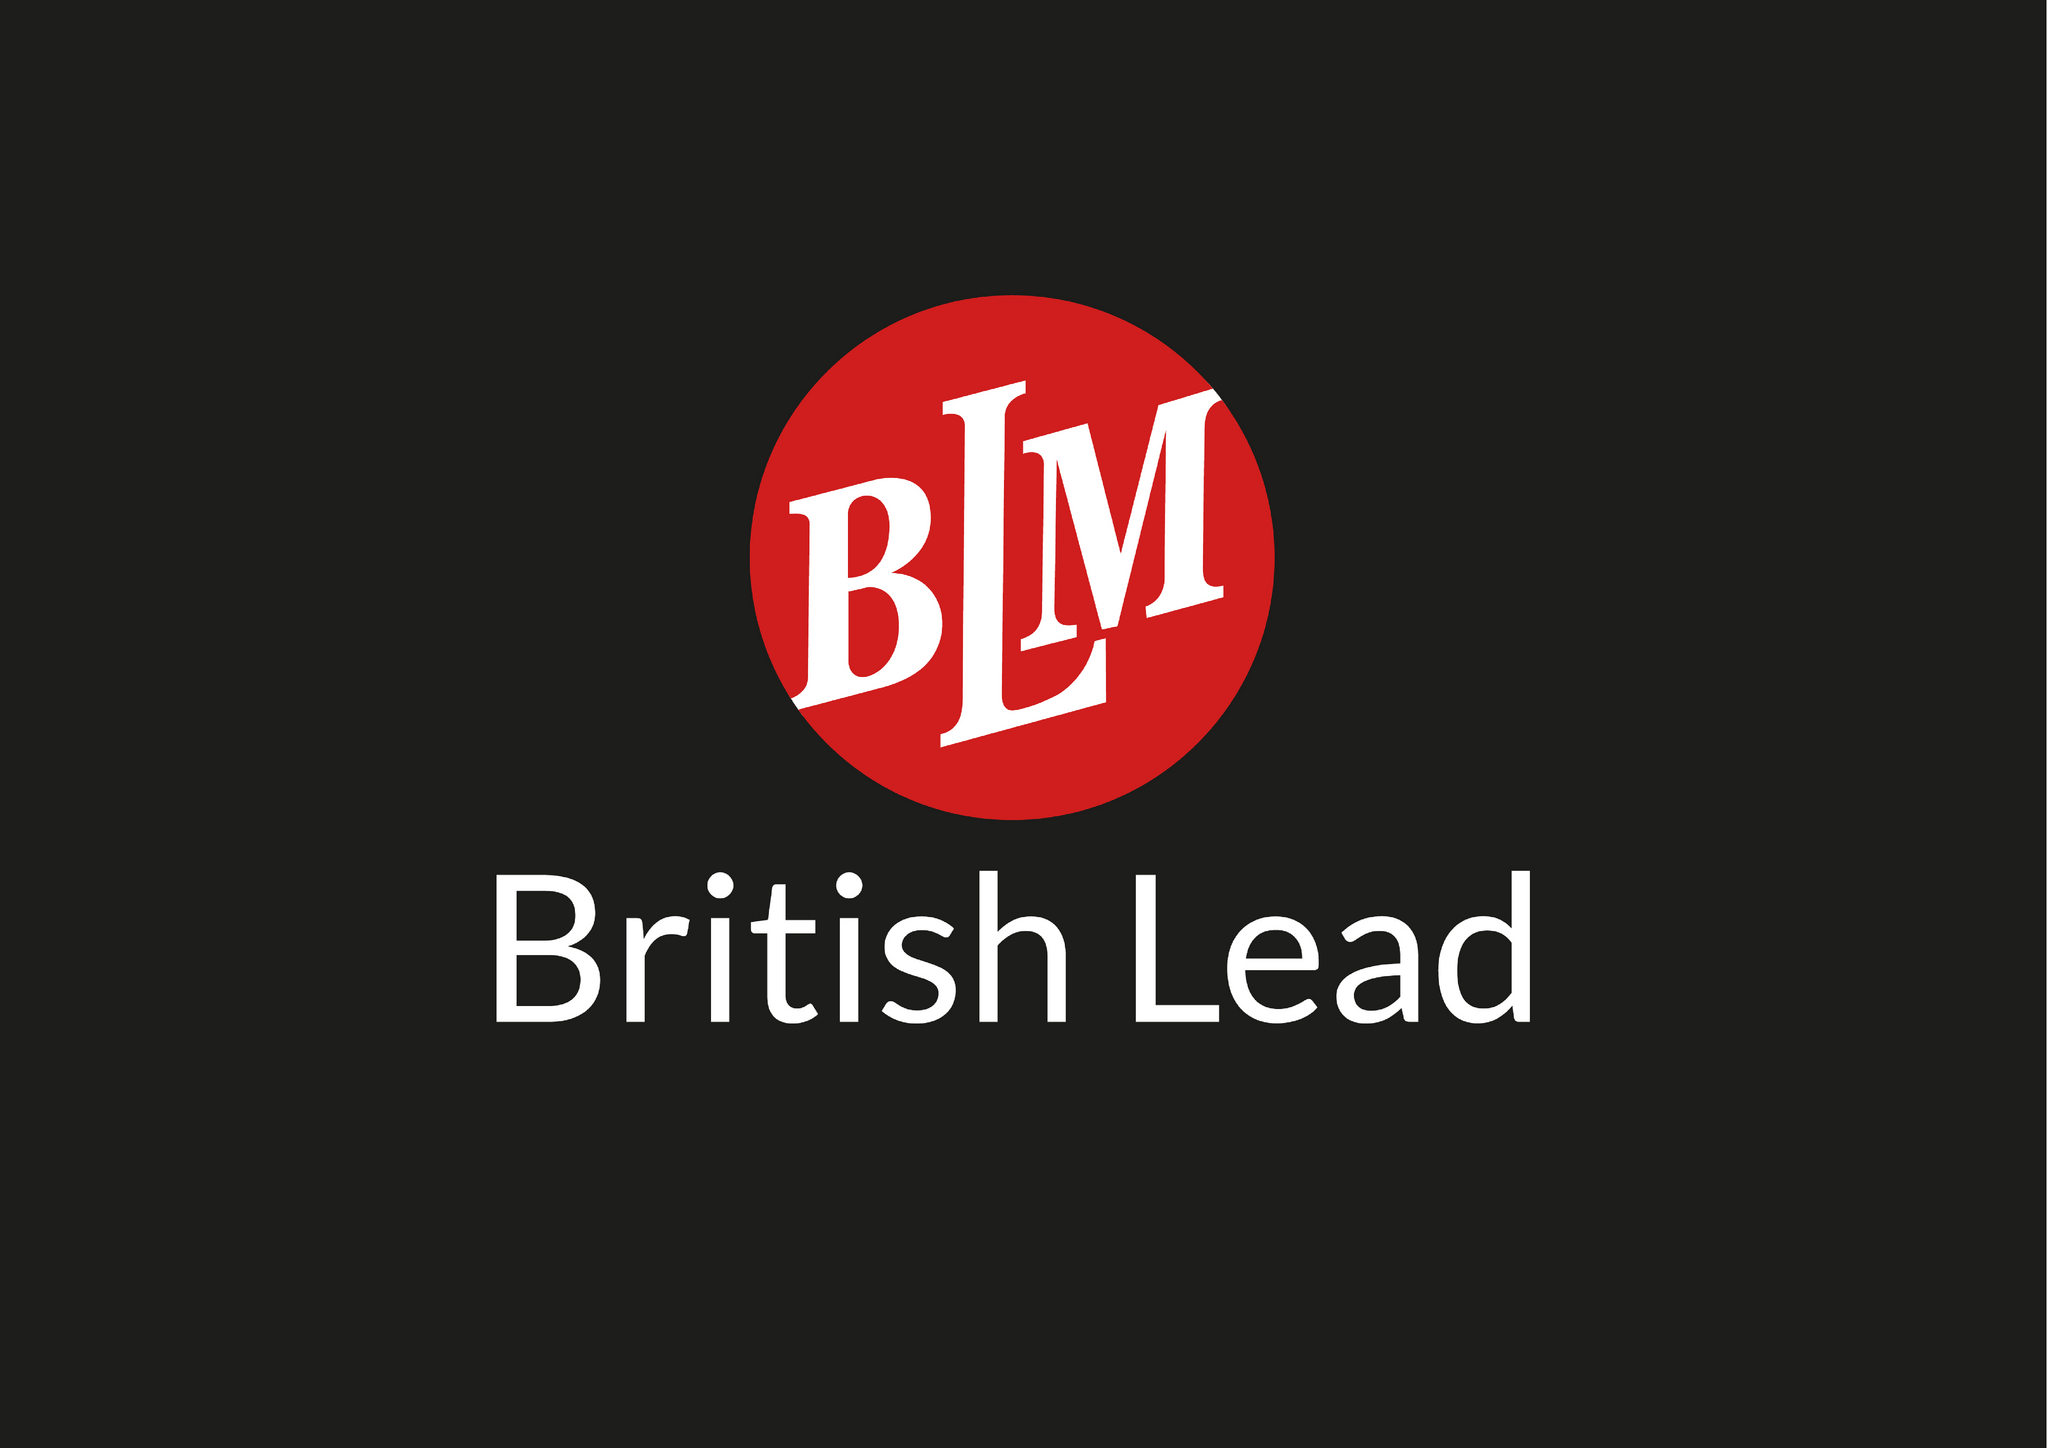 BLM British Lead